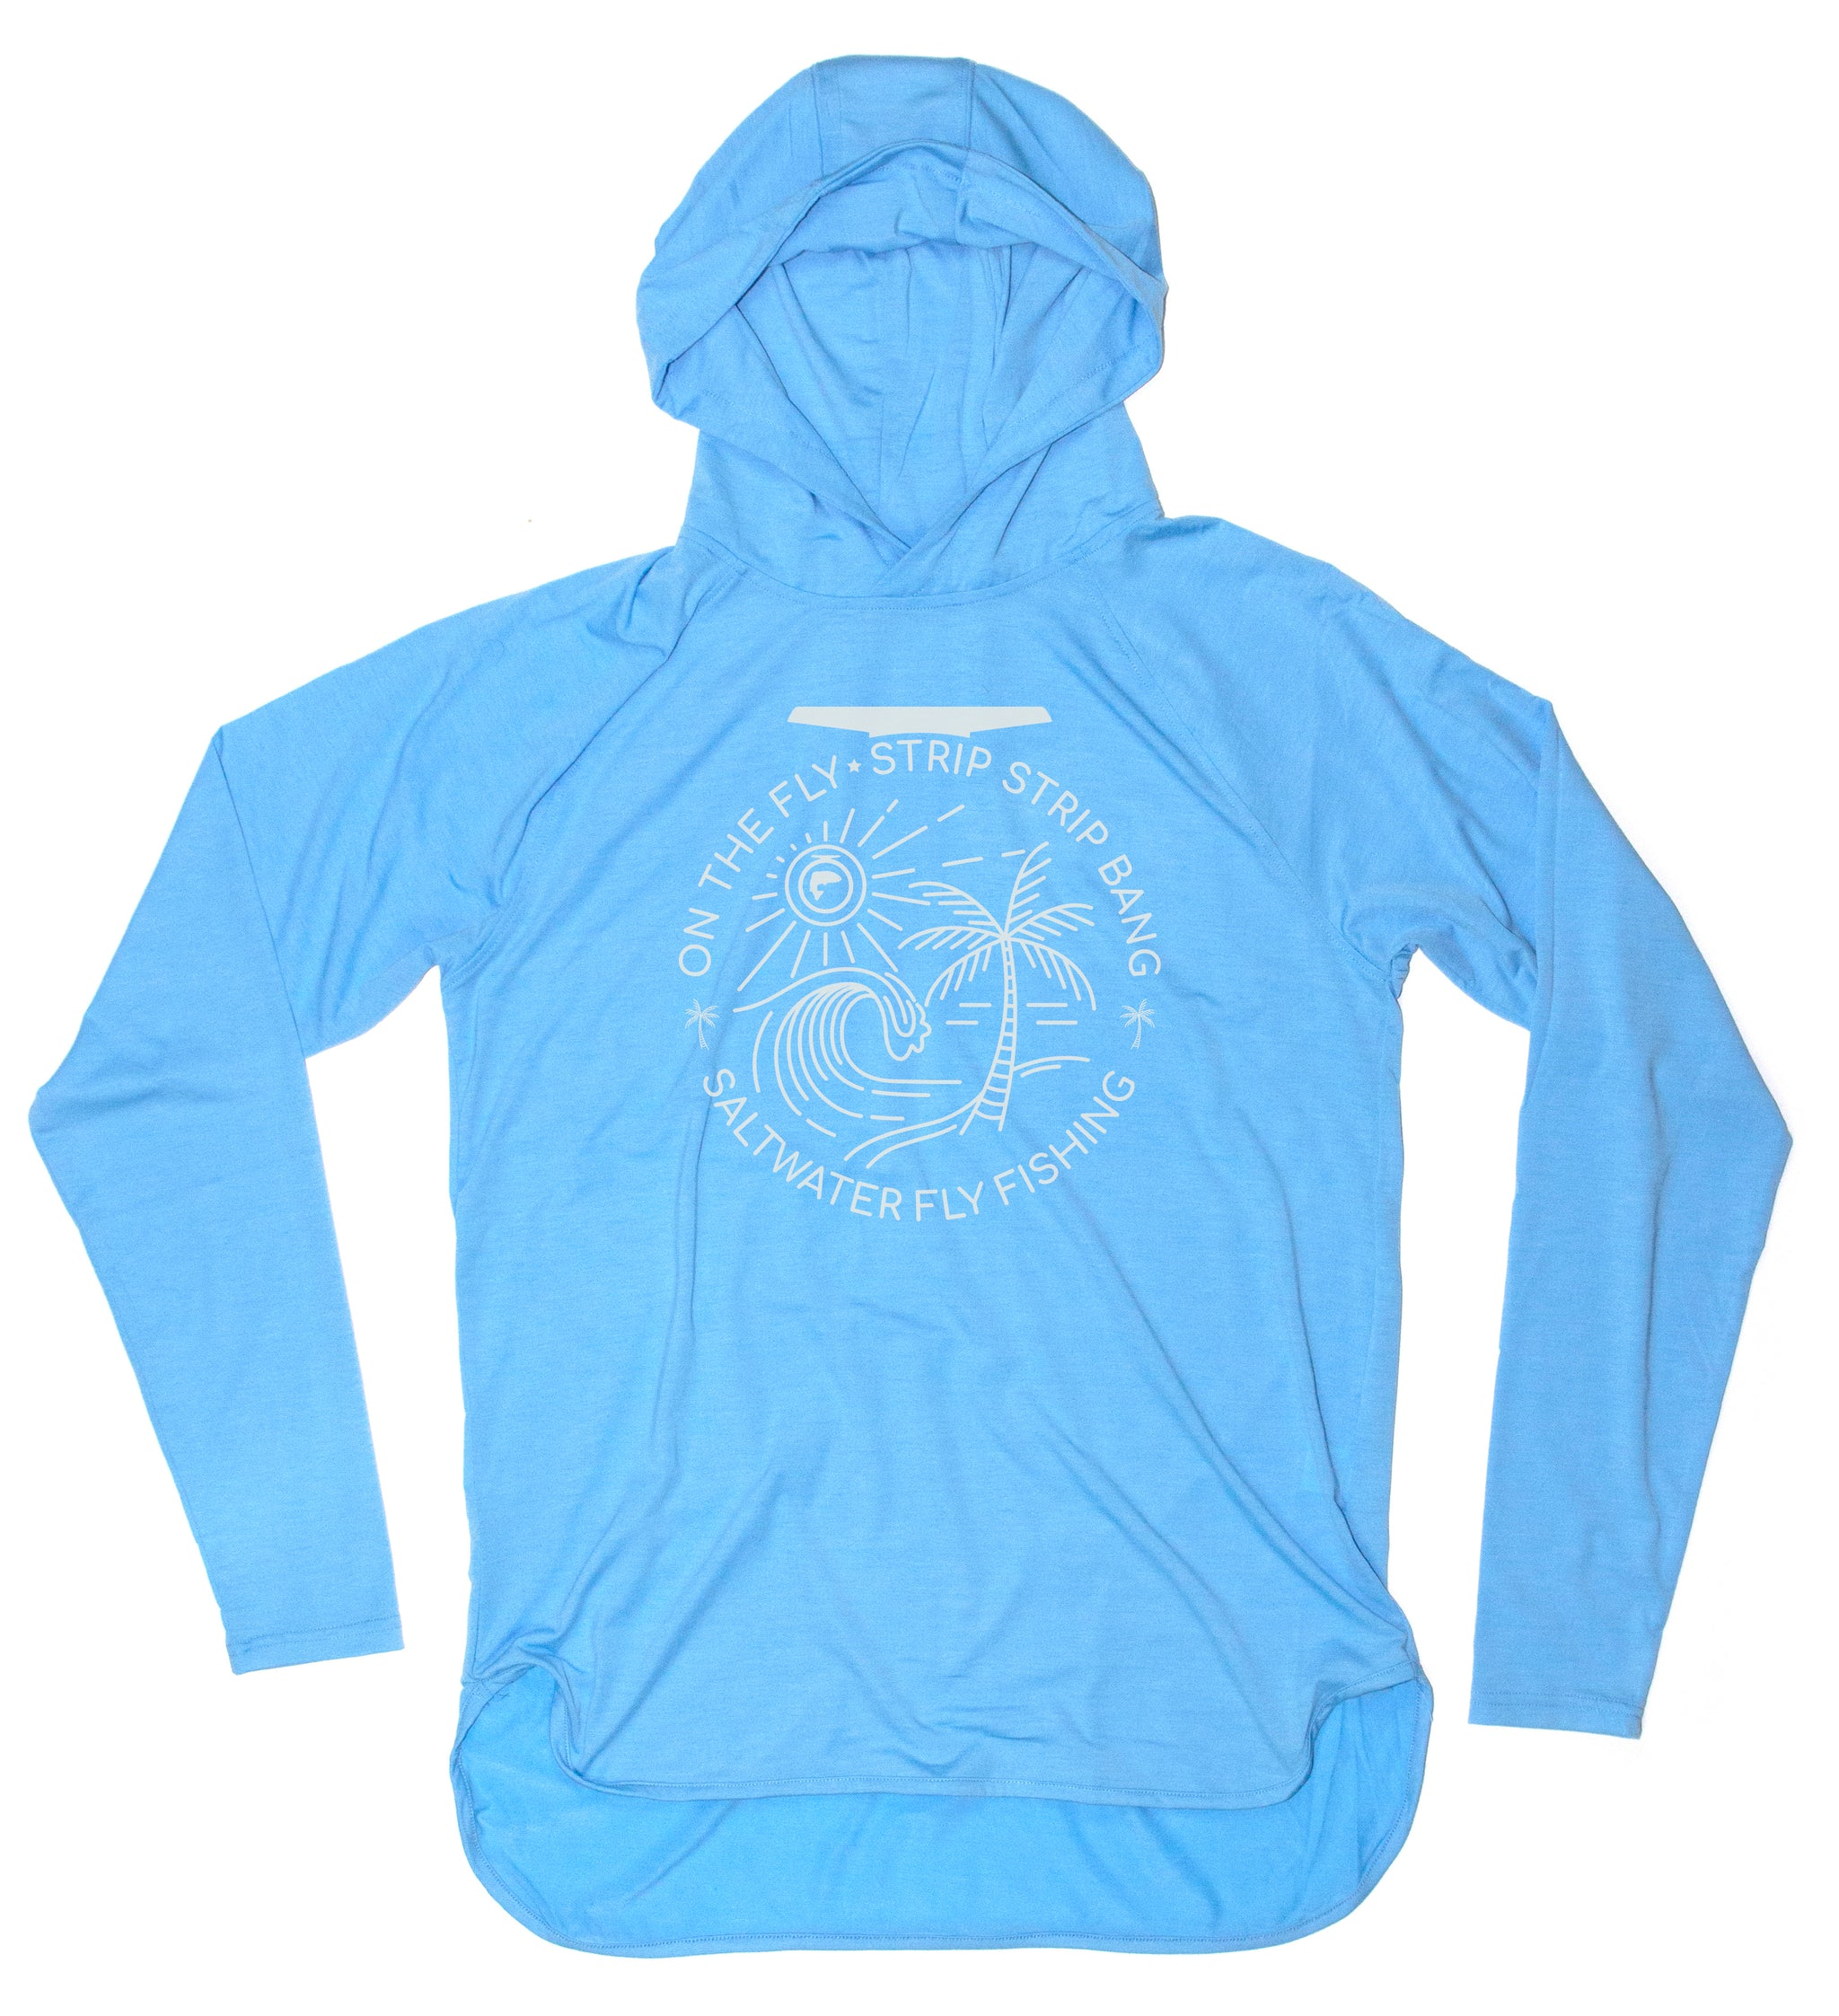 Xtreme Performance Pullover Sun Hoodie - On The Fly - Unisex